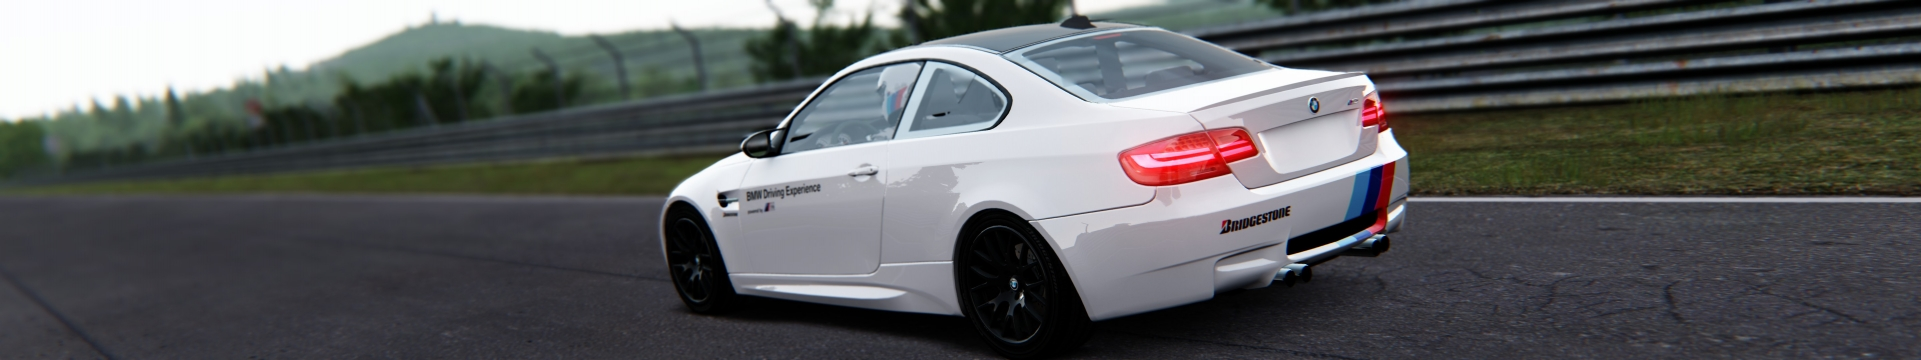 Assetto Corsa - M3 @ 'Ring #2